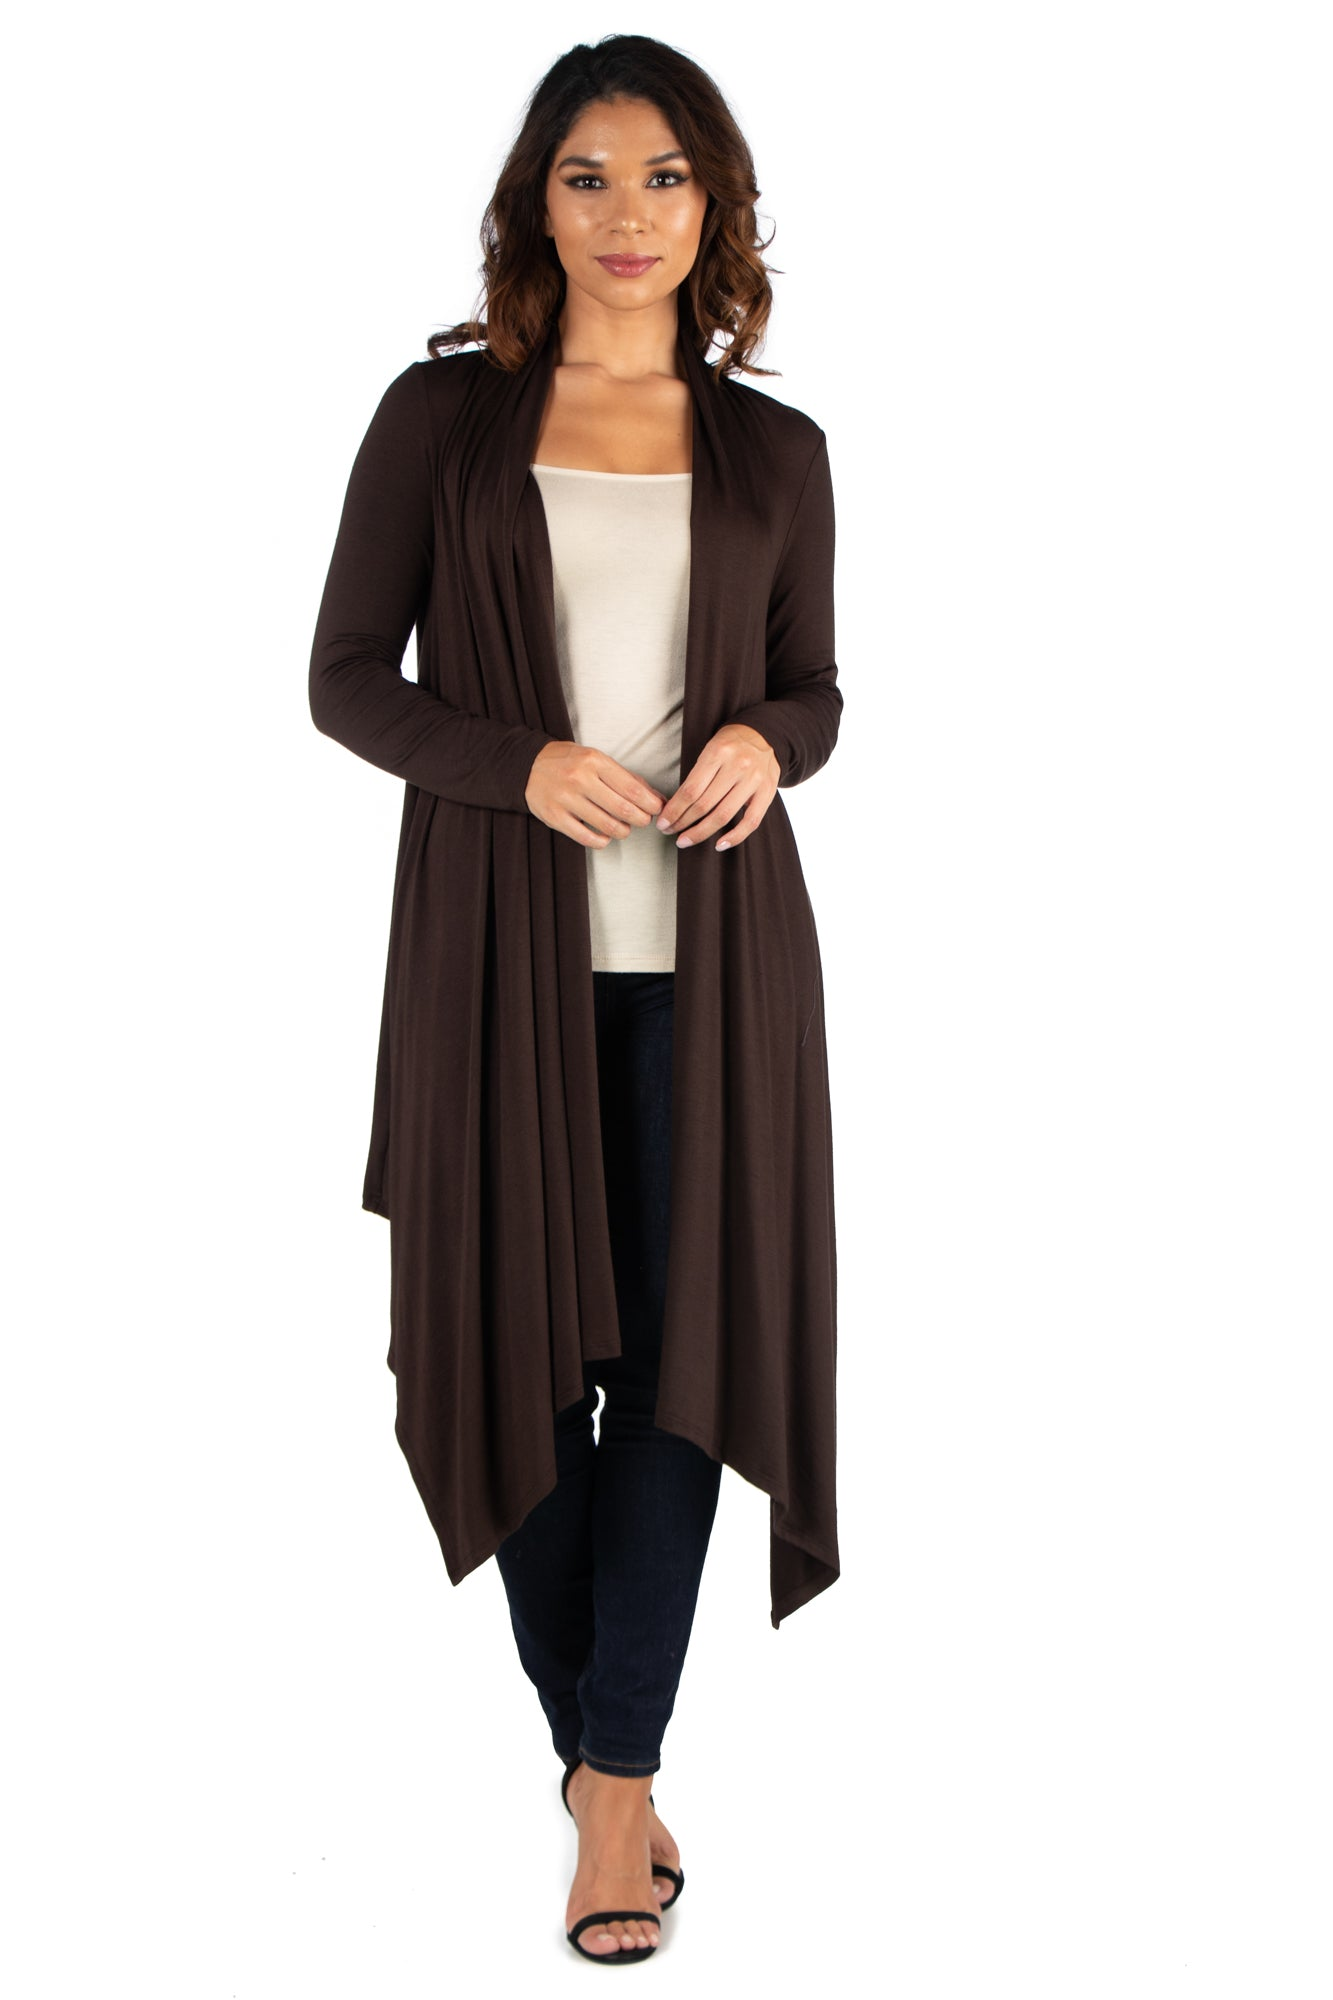 24seven Comfort Apparel Extra Long Open Front Cardigan-SHRUGS-24Seven Comfort Apparel-BROWN-S-24/7 Comfort Apparel